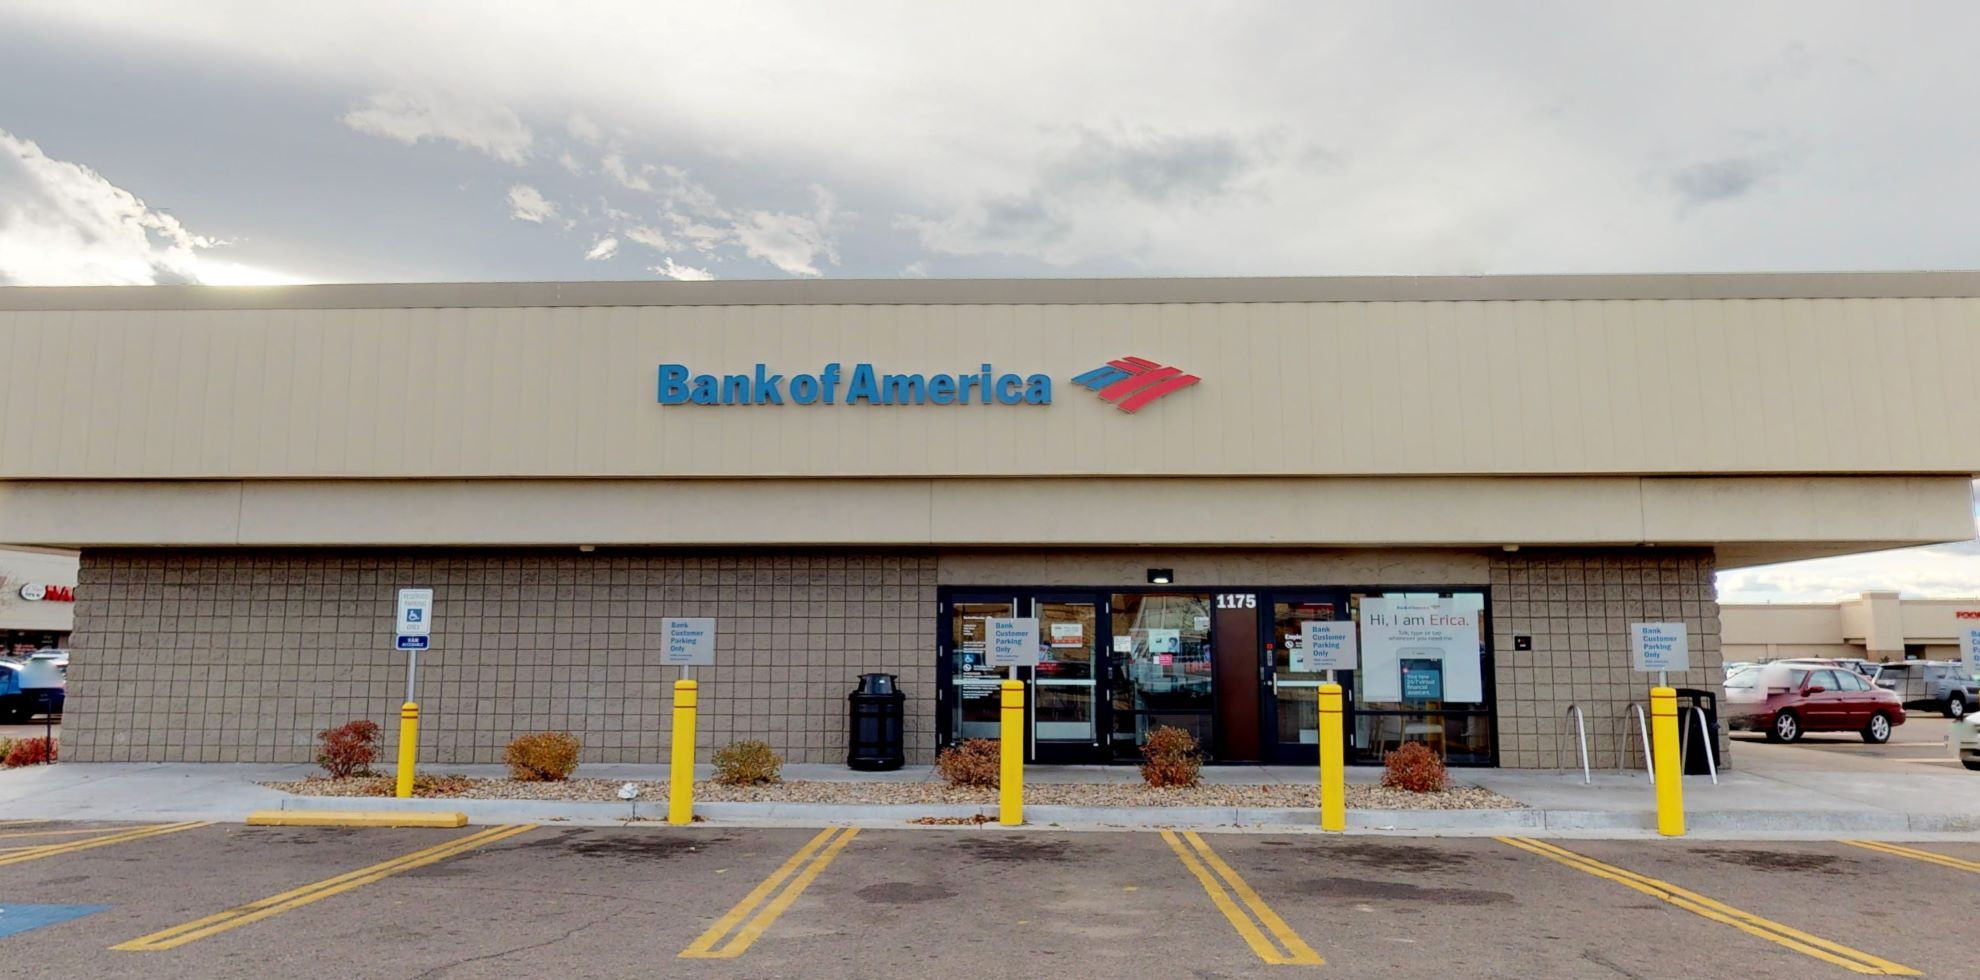 Bank of America financial center with walk-up ATM   1175 S Havana St Unit A1, Aurora, CO 80012